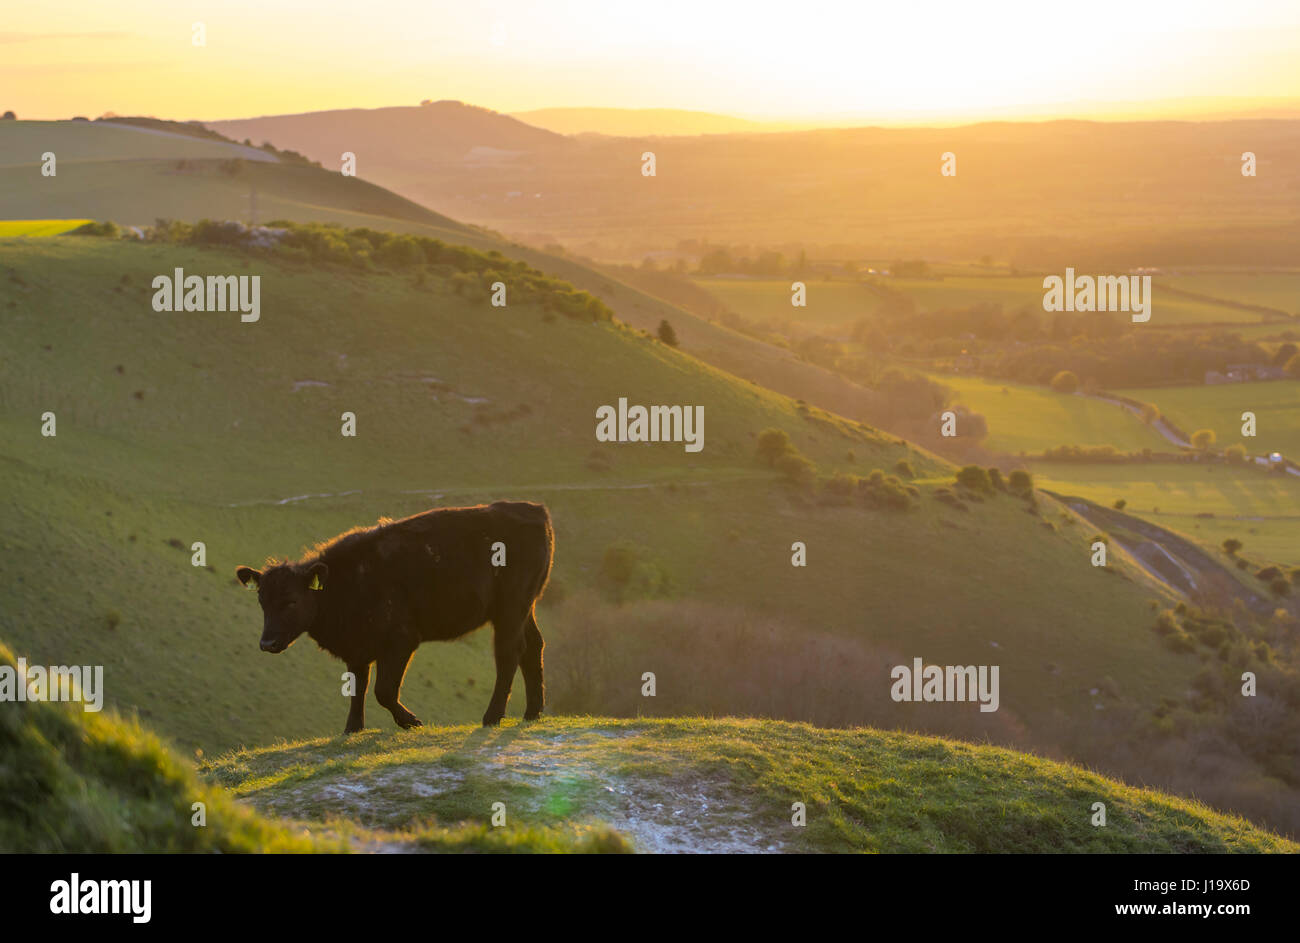 side-view-of-a-single-cow-standing-alone-on-a-hill-in-the-british-J19X6D.jpg